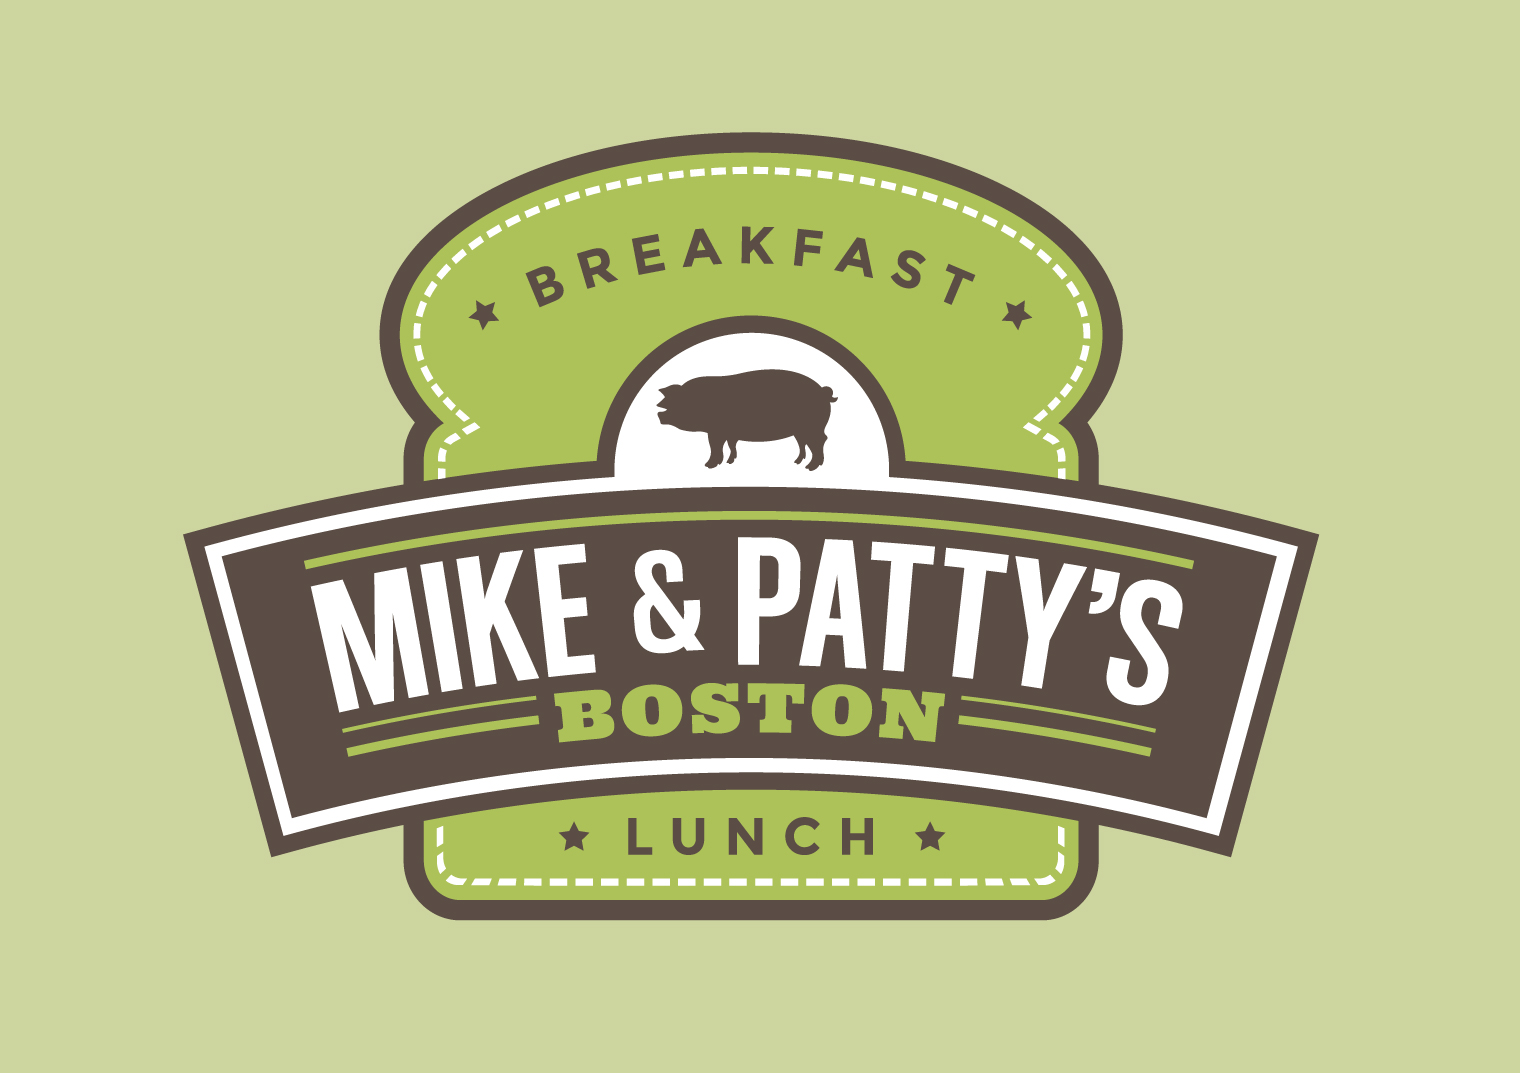 Mike & Pattys Logo